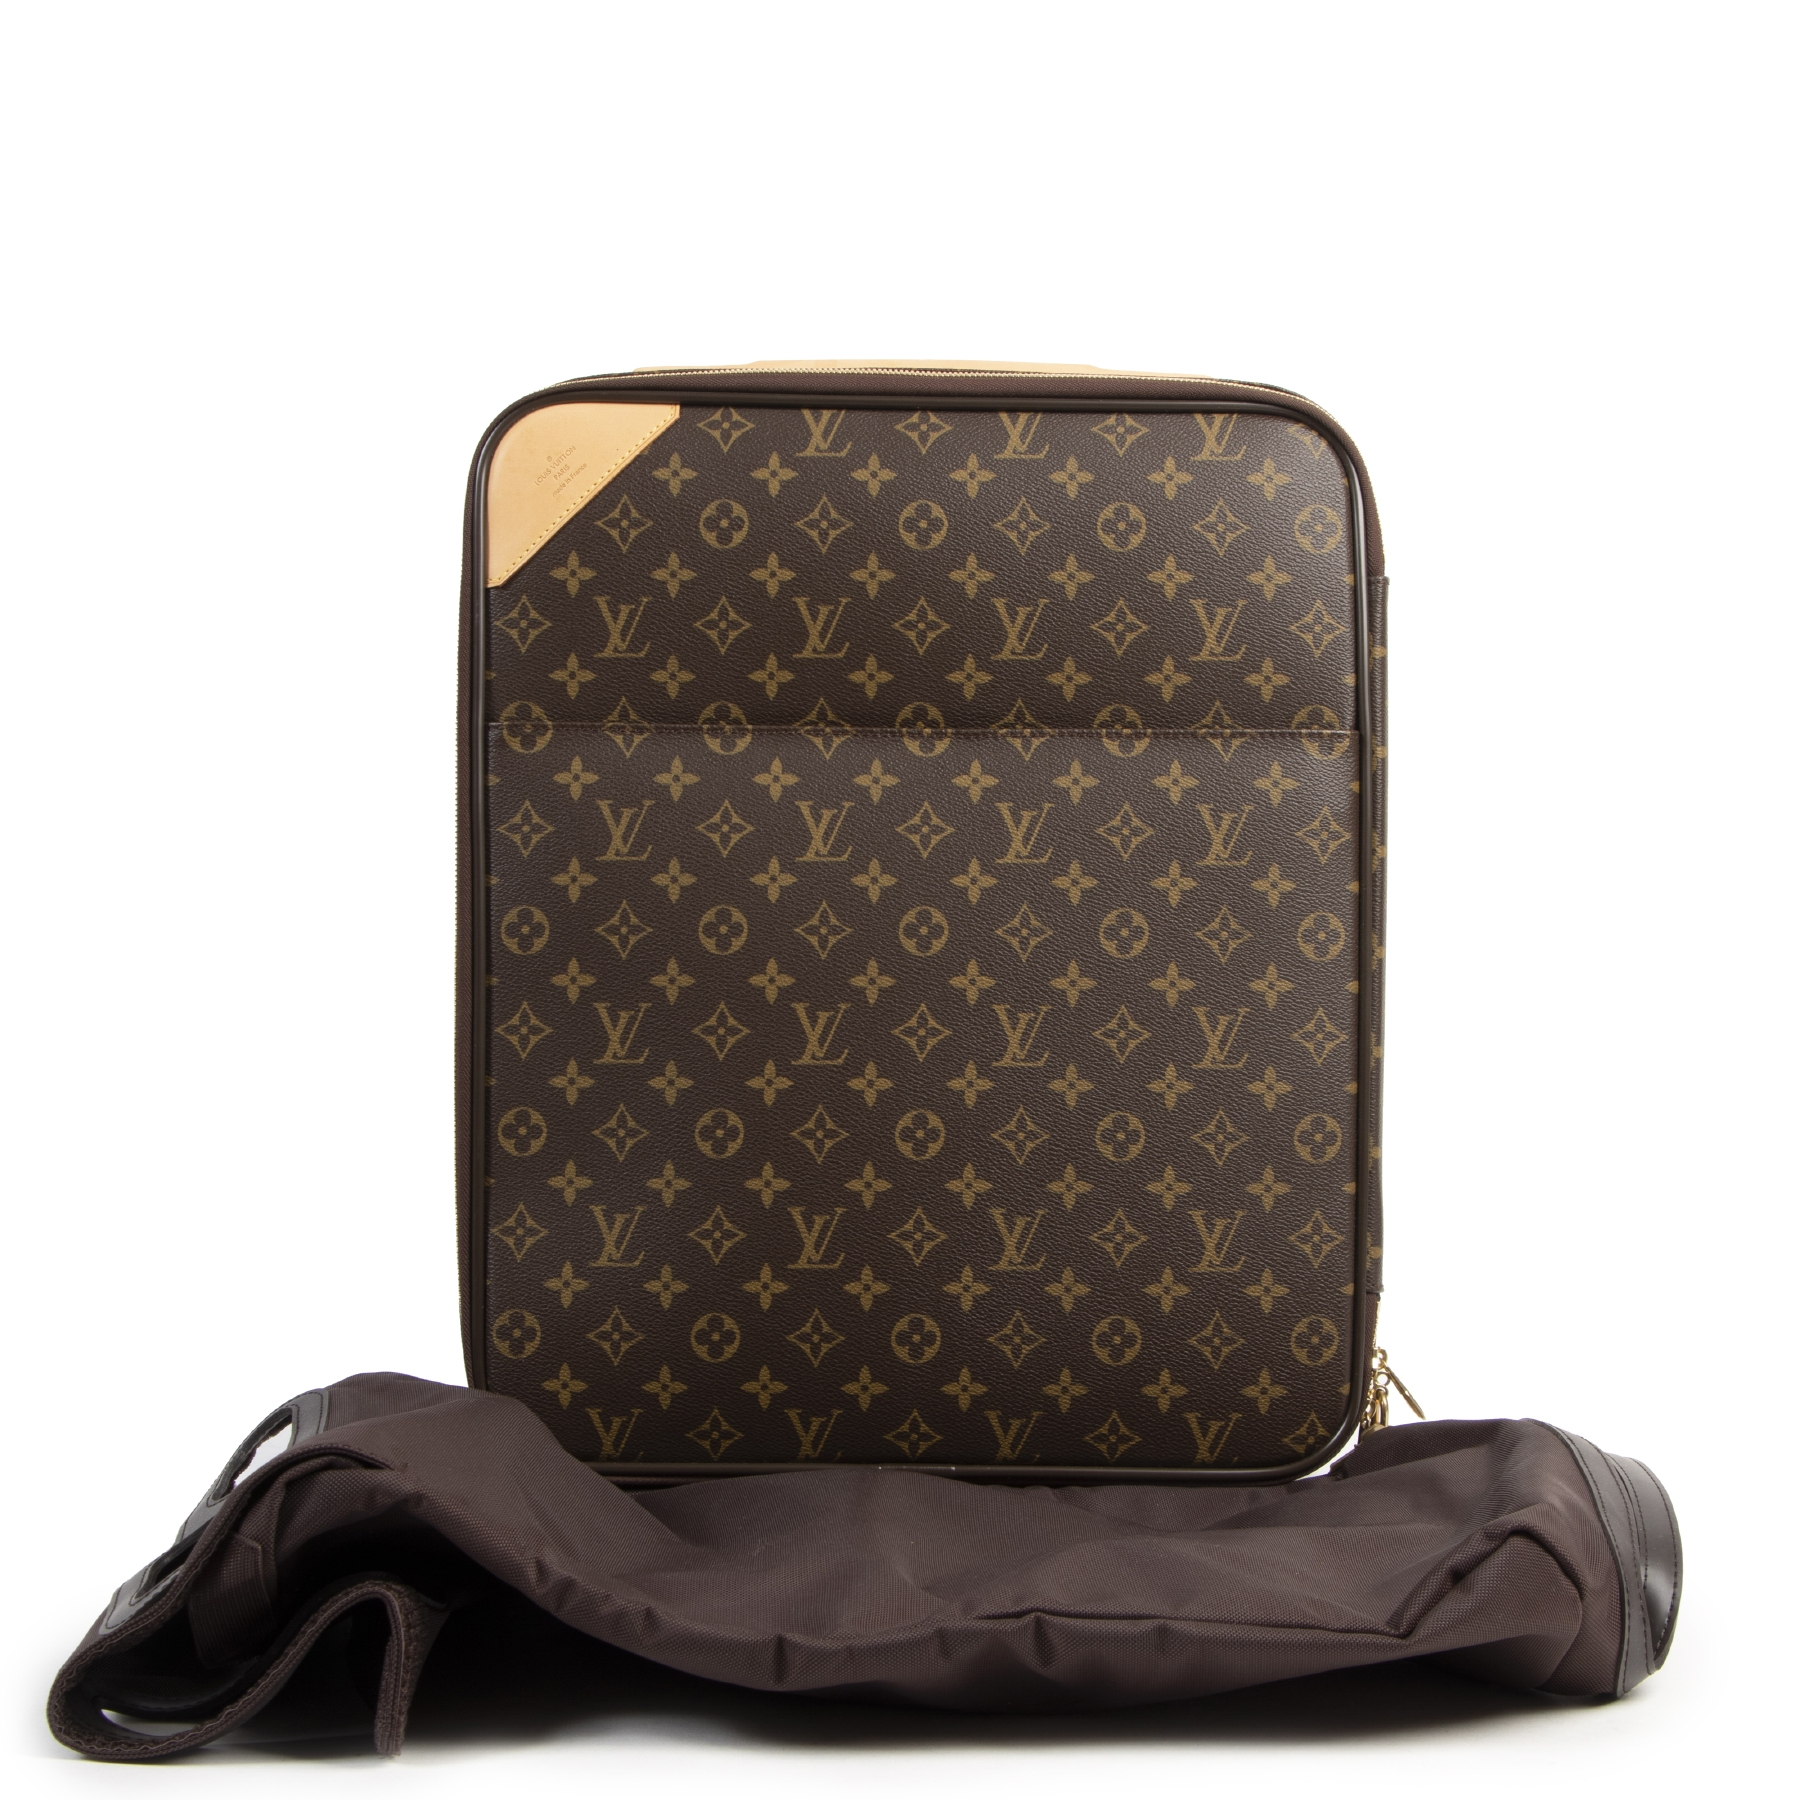 Authentieke tweedehands vintage Louis Vuitton Pégase 45 Monogram Suitcase koop online webshop LabelLOV